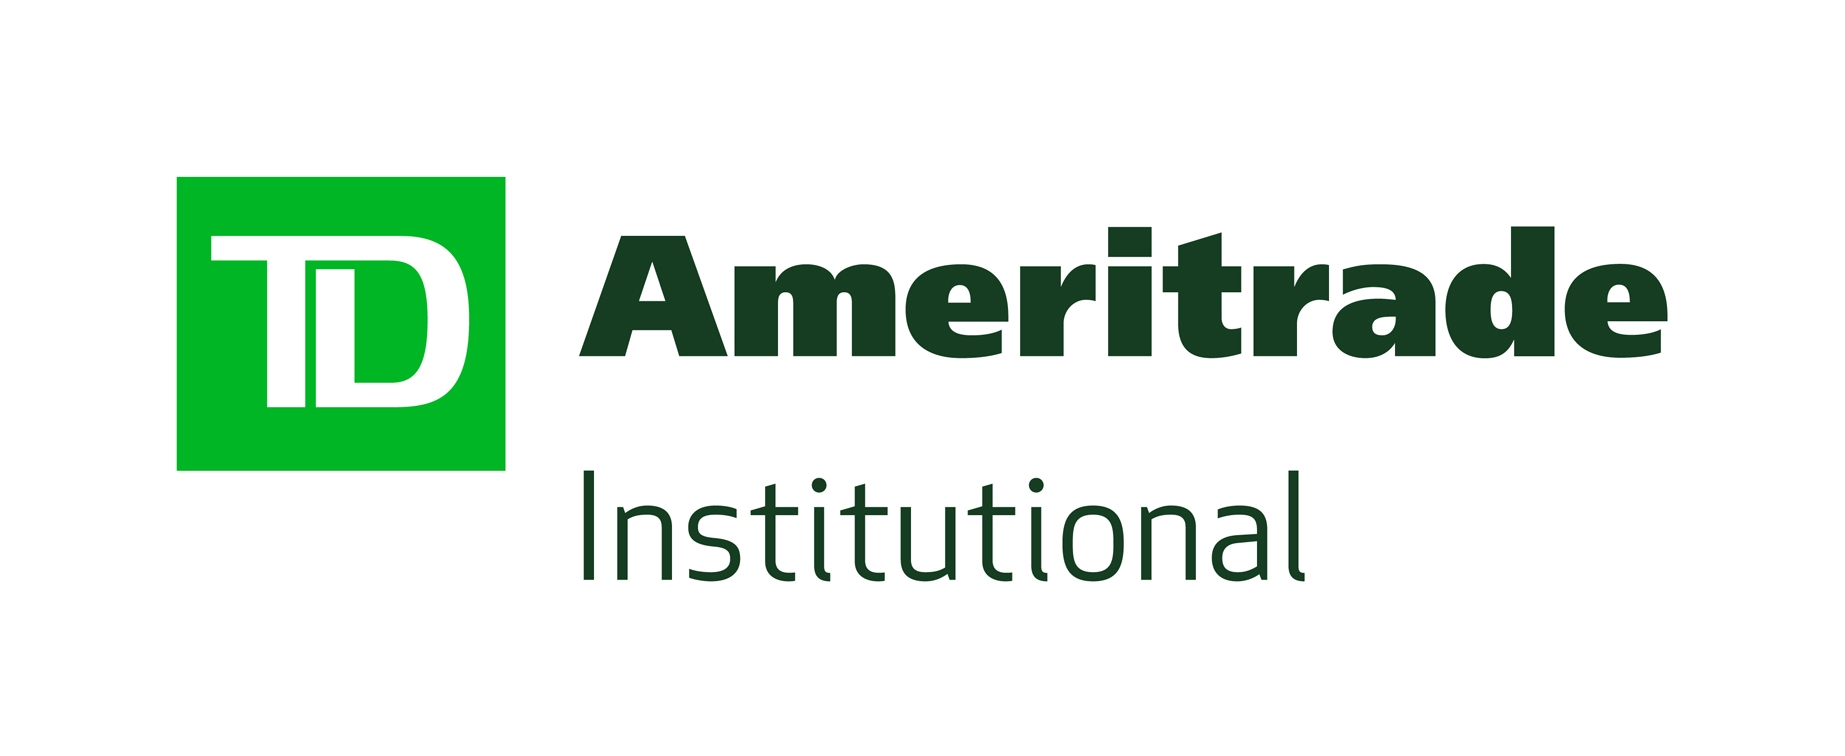 TD Ameritrade Institutional Portland, OR Clarity Capital Management